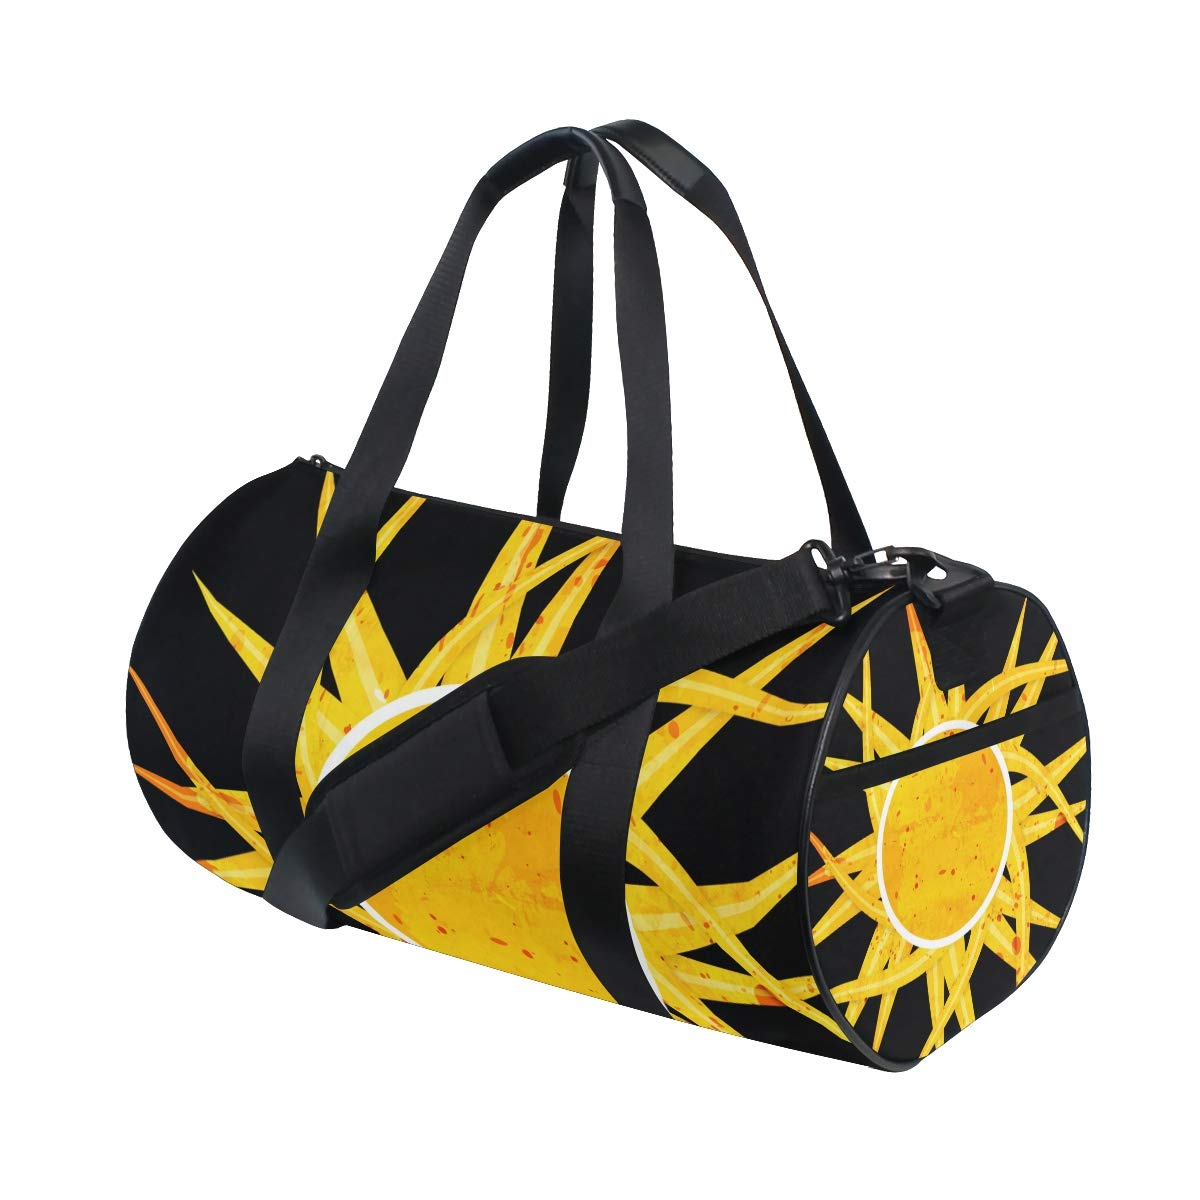 Sun Yoga Sports Gym Duffle Bags Tote Sling Travel Bag Patterned Canvas with Pocket and Zipper For Men Women Bag